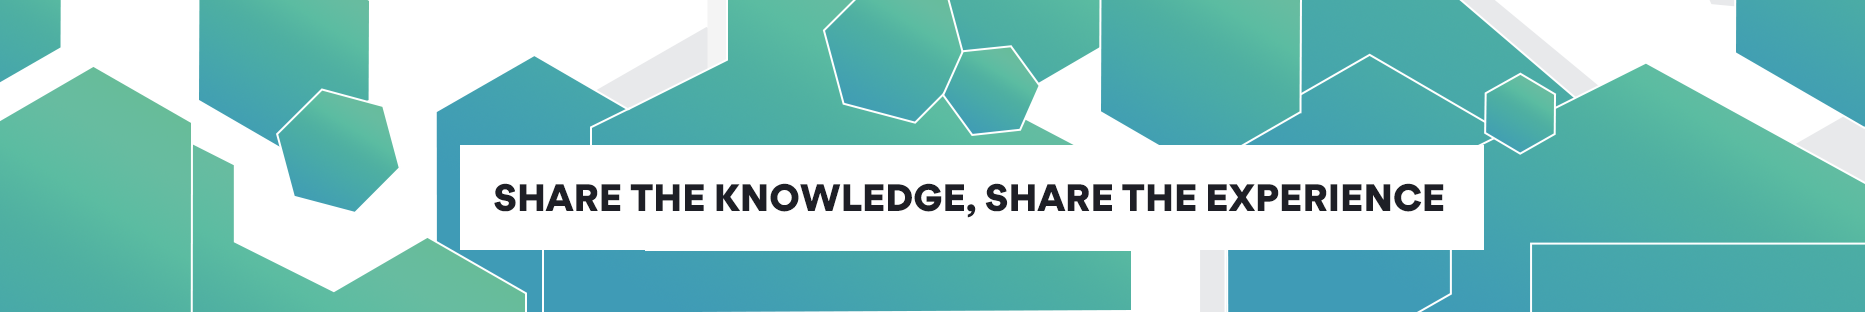 Share the Knowledge Share the Experience